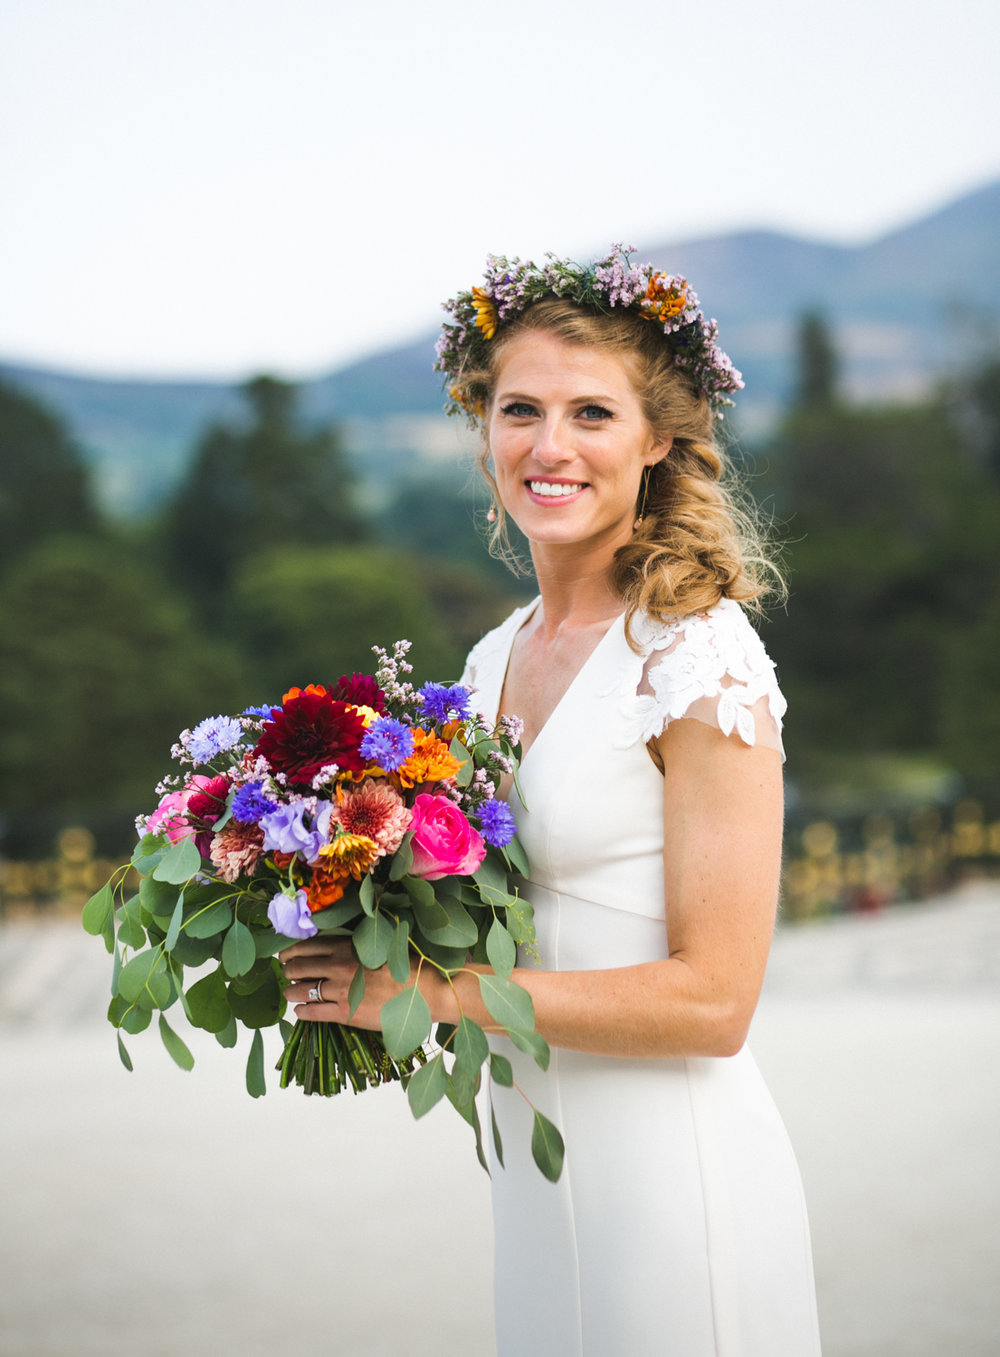 Powerscourt estate wedding-56.jpg